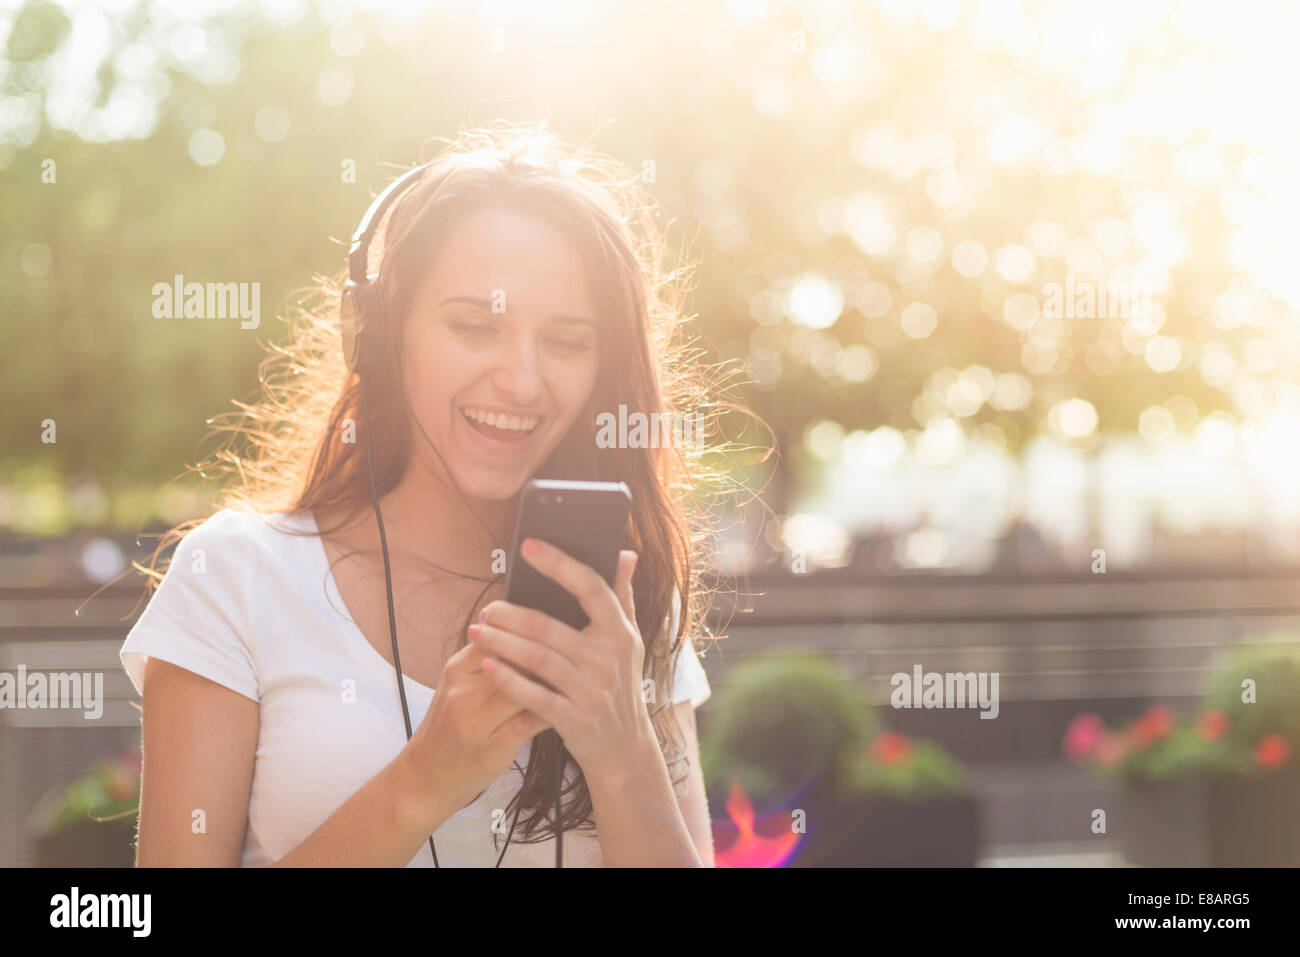 Young woman wearing headphones listening to music - Stock Image